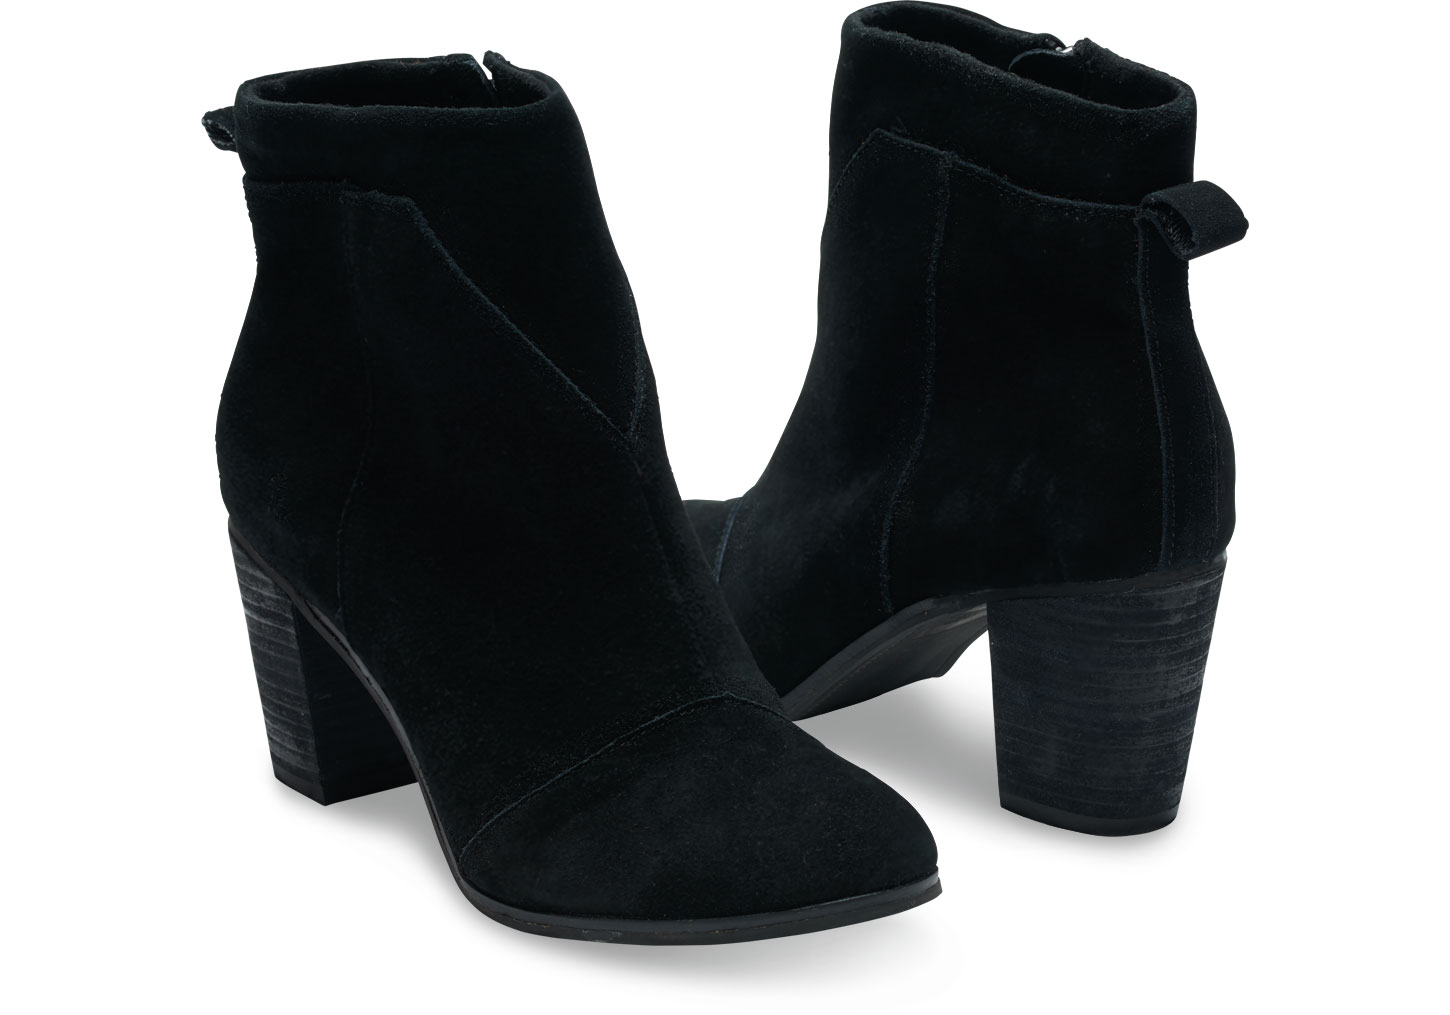 How to wear black suede booties